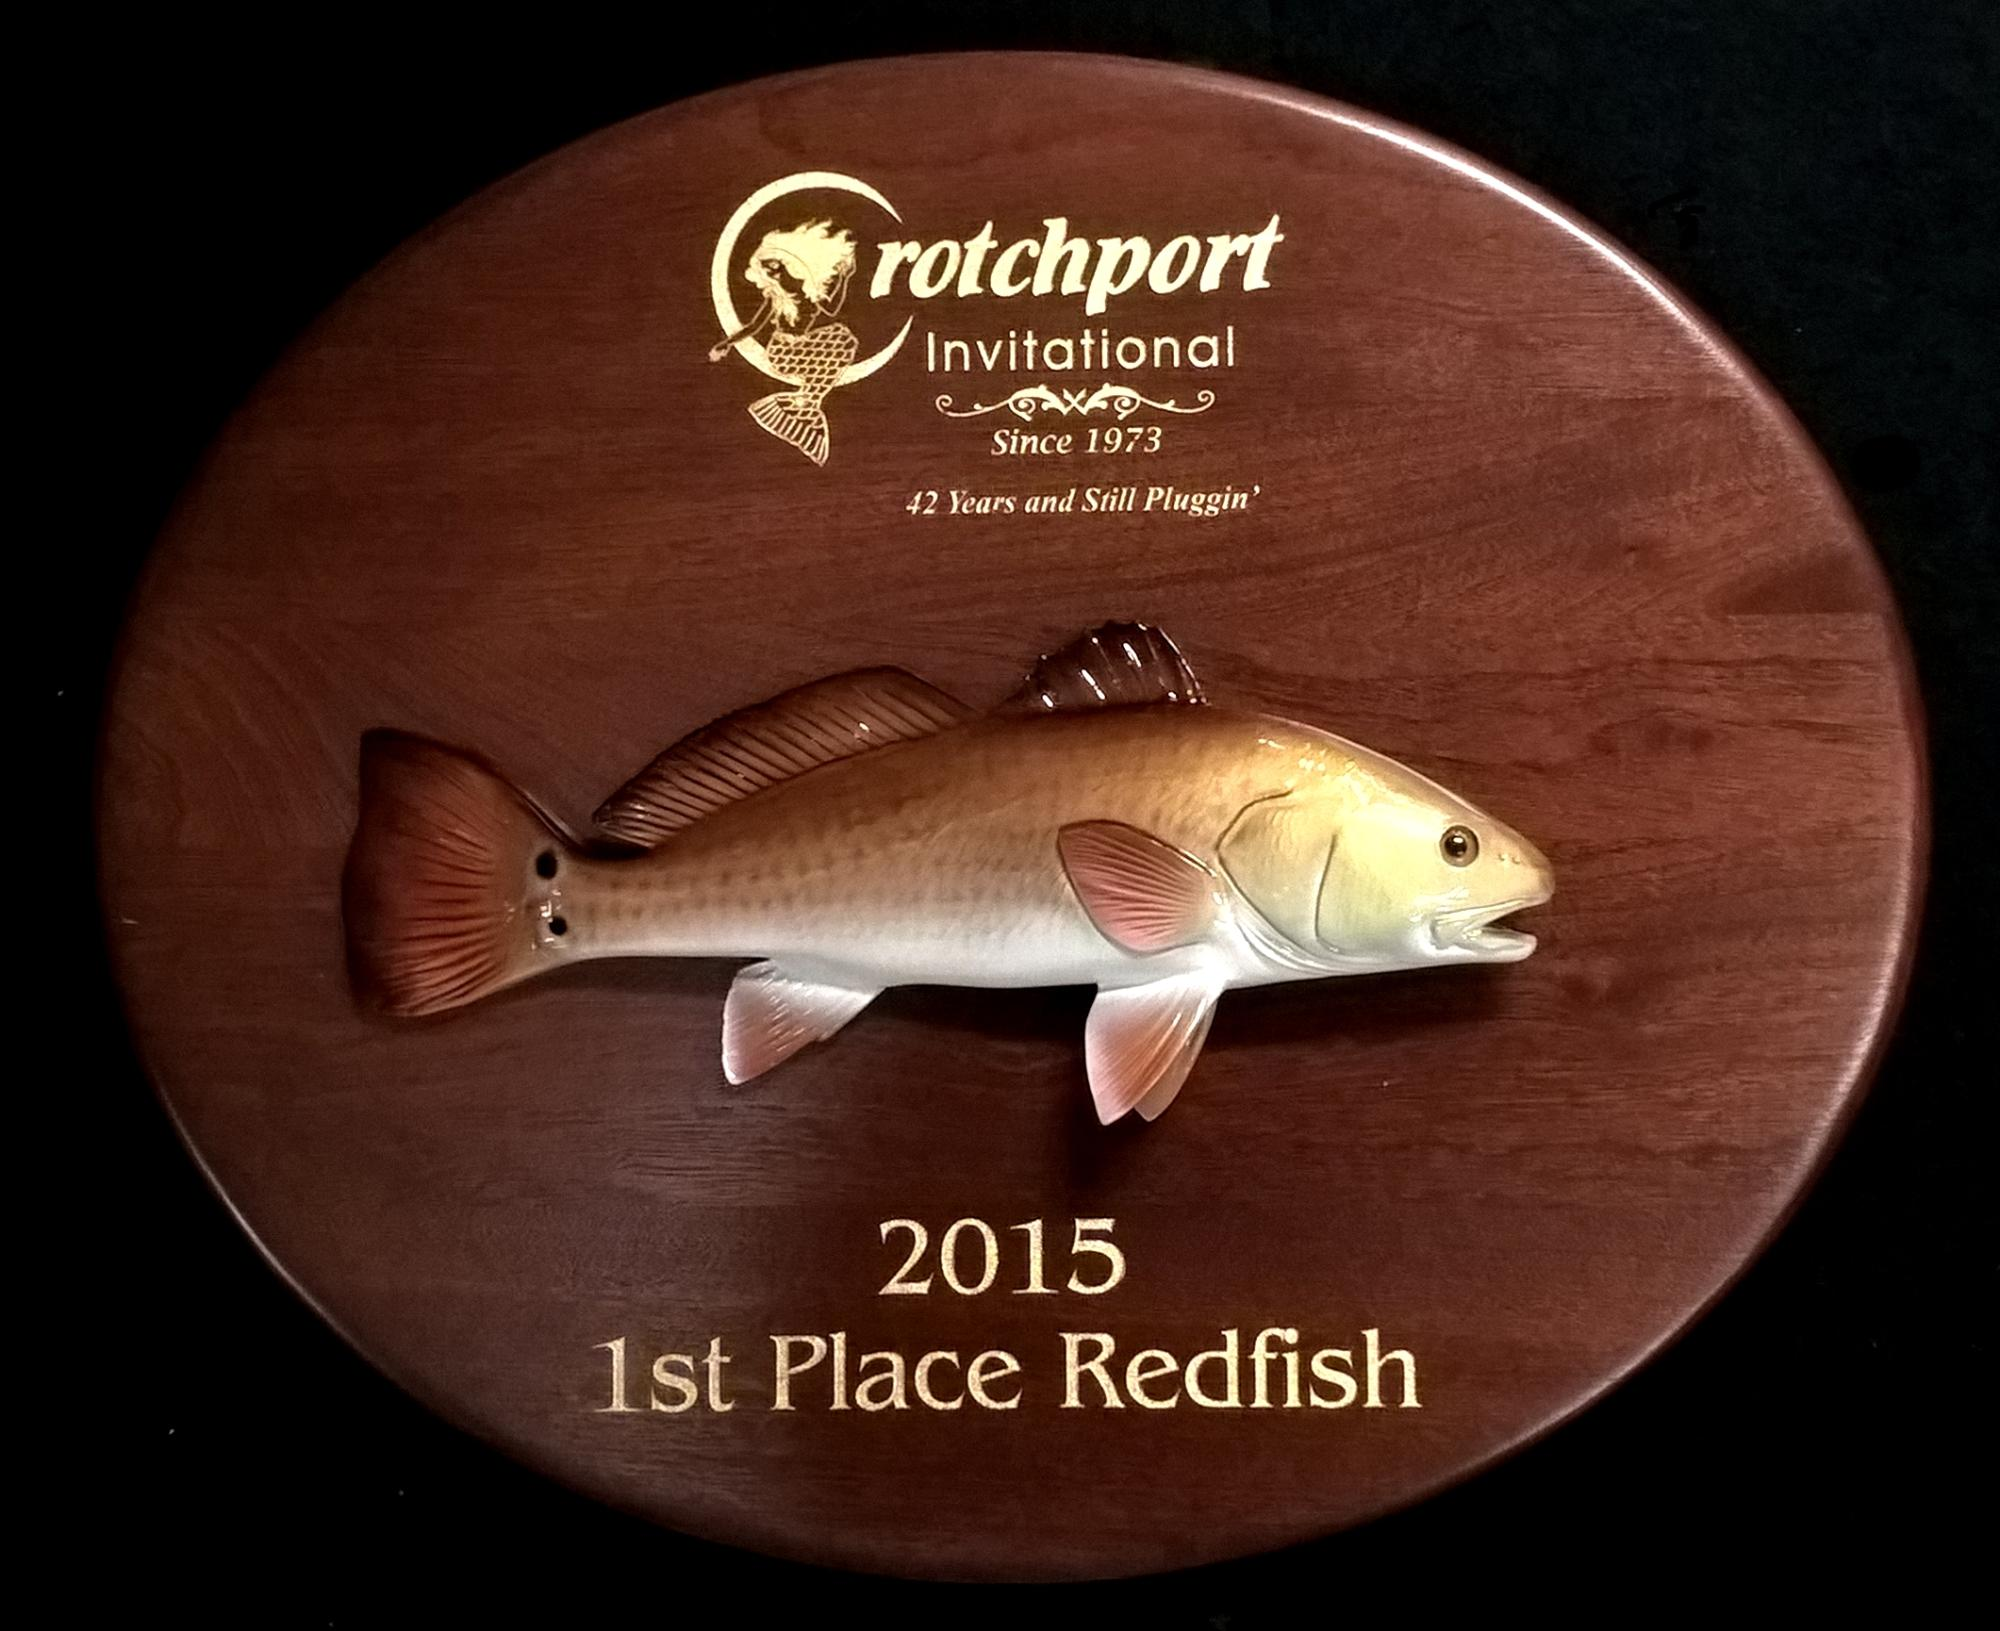 Crotchport_Redfish_plaque.jpg